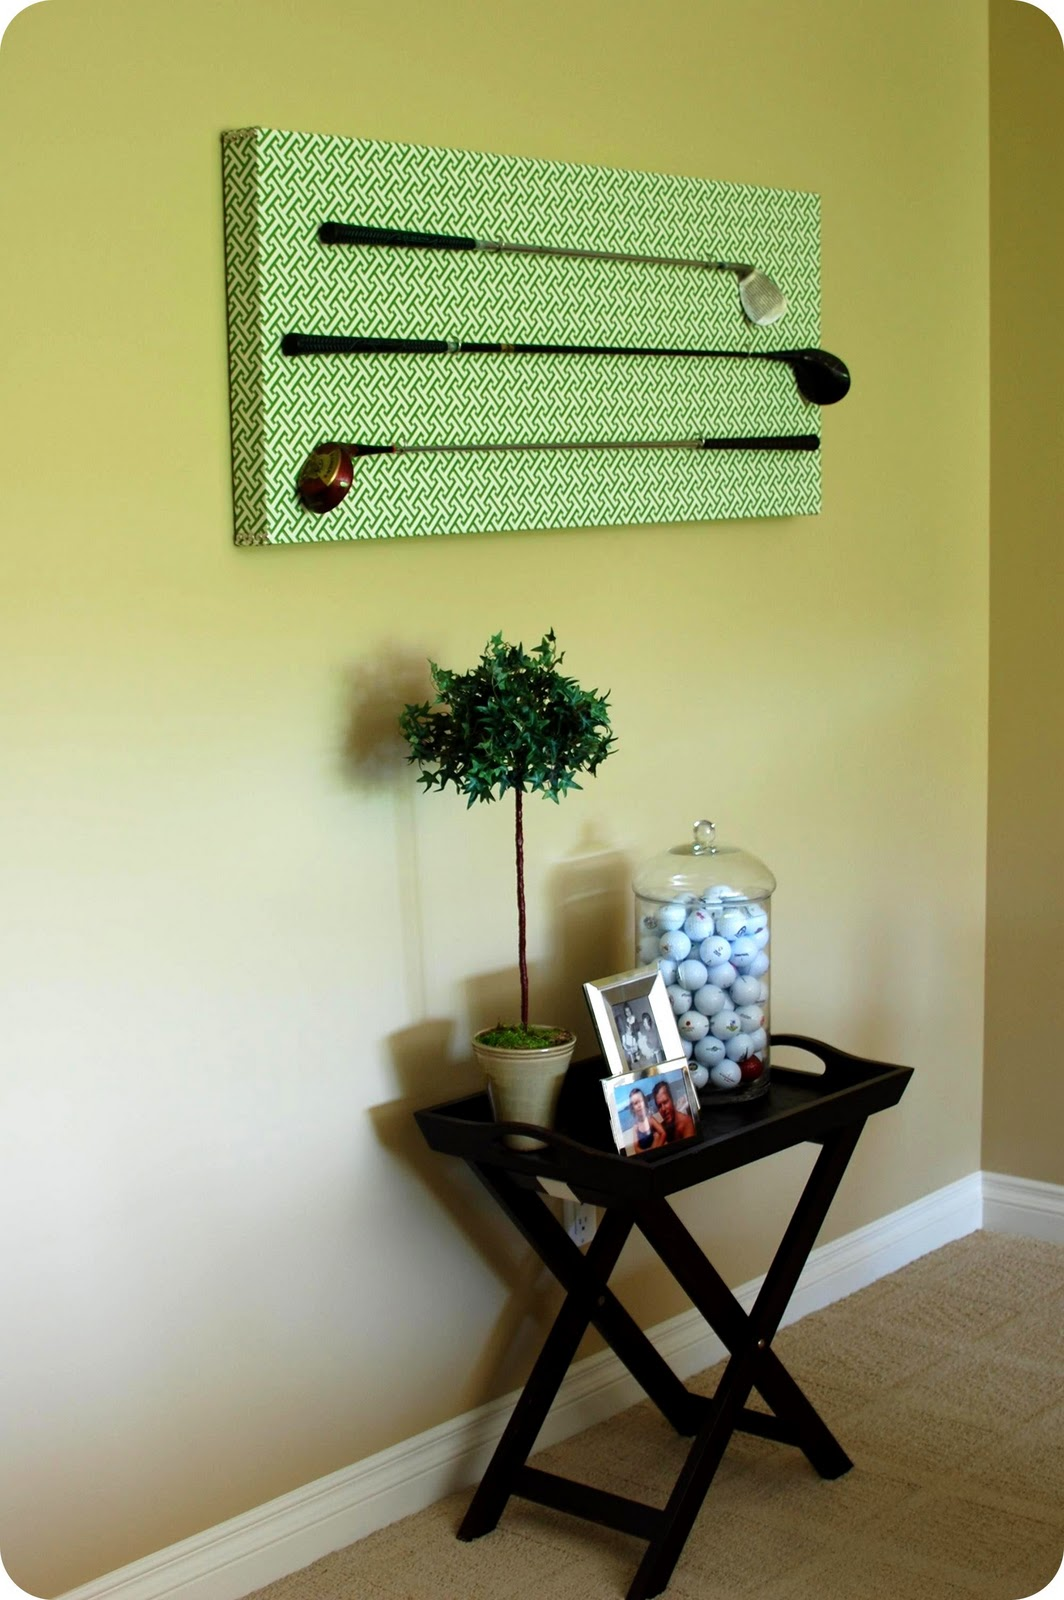 33 Shades of Green: Golf Club Wall Decor